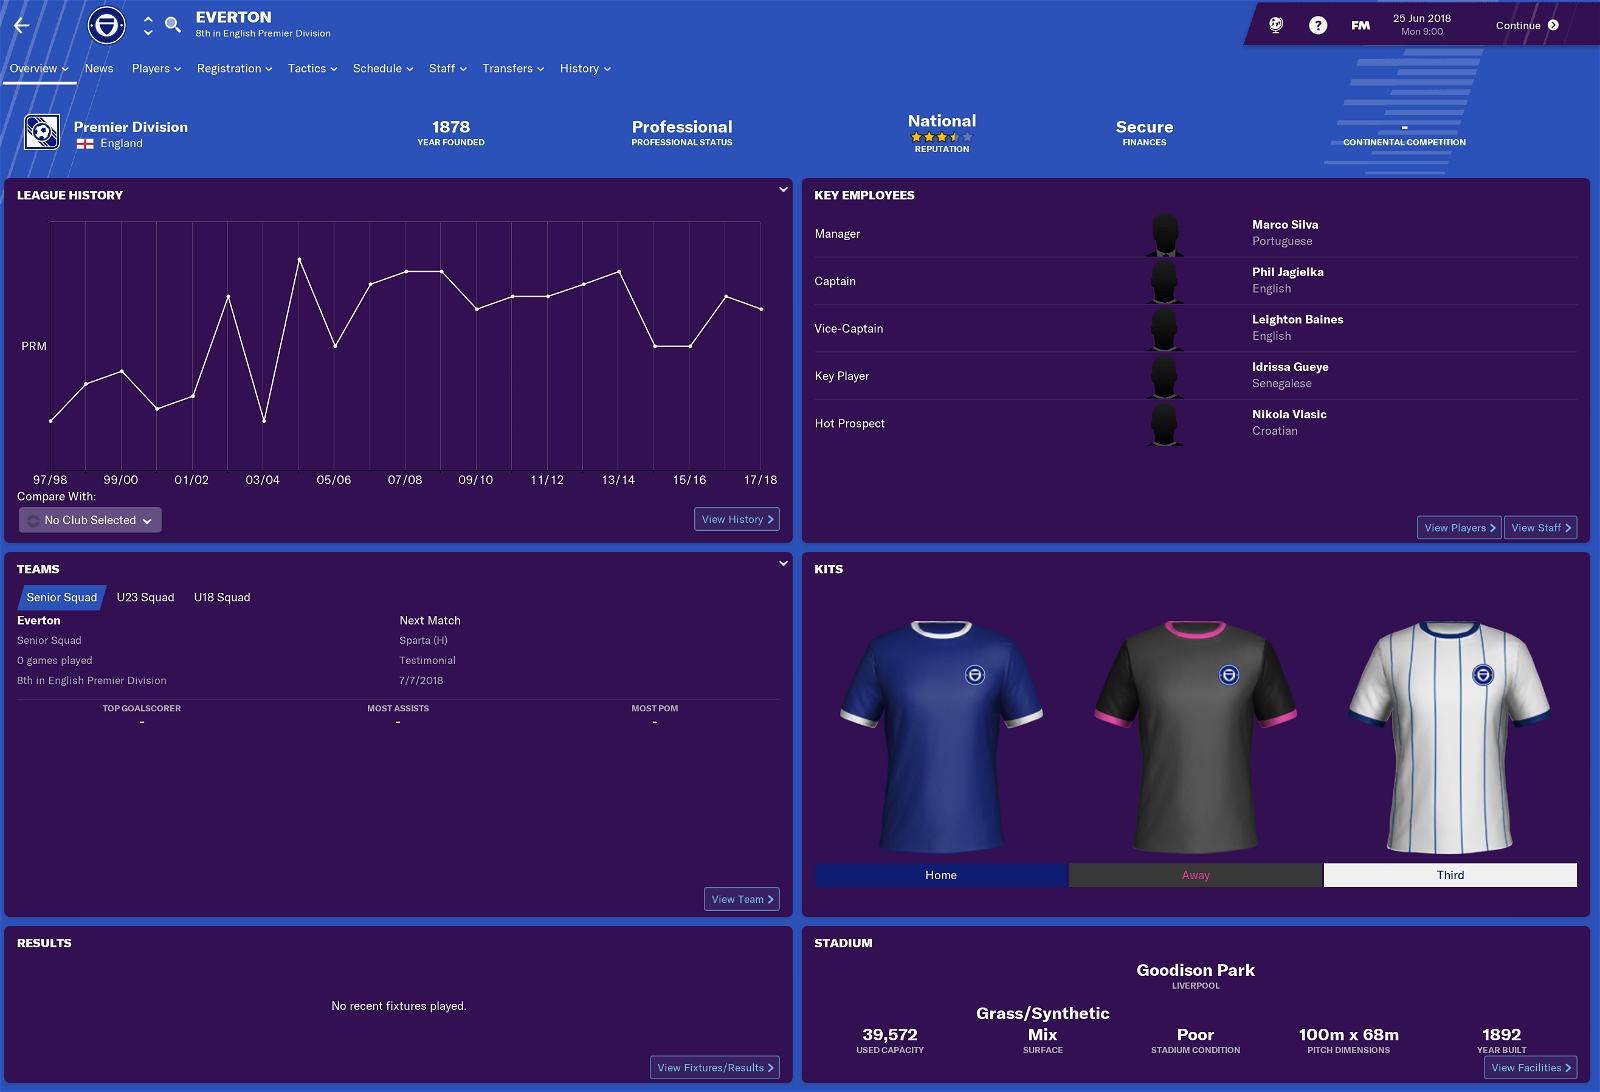 FM19 TEAM GUIDE EVERTON